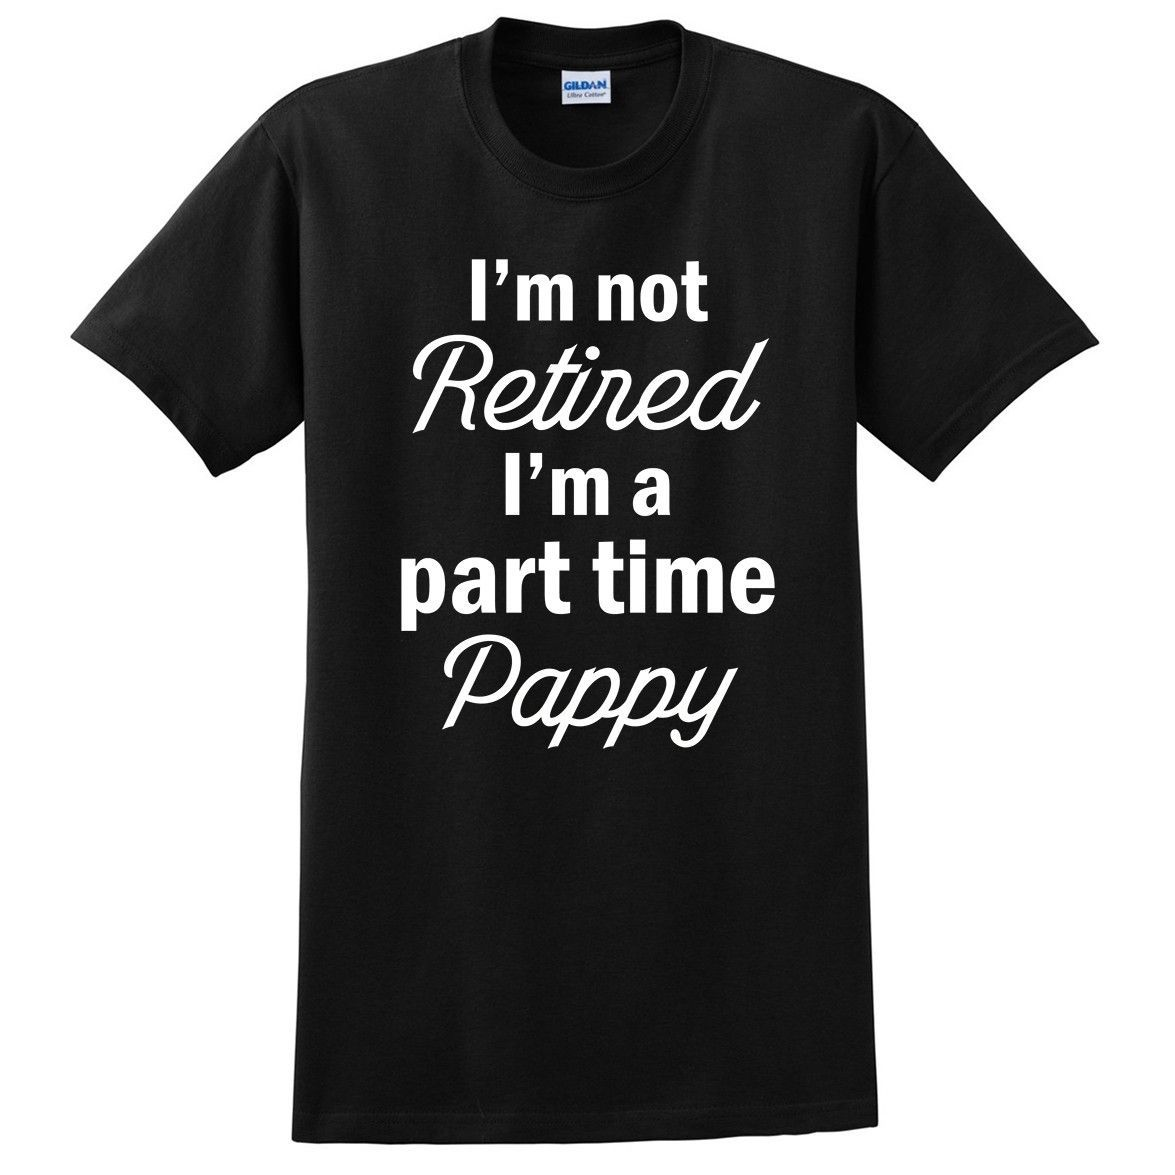 I'm not retired, I'm a part time pappy T Shirt #pappy  #giftforpappy   #birthdaygift  #retired  #family